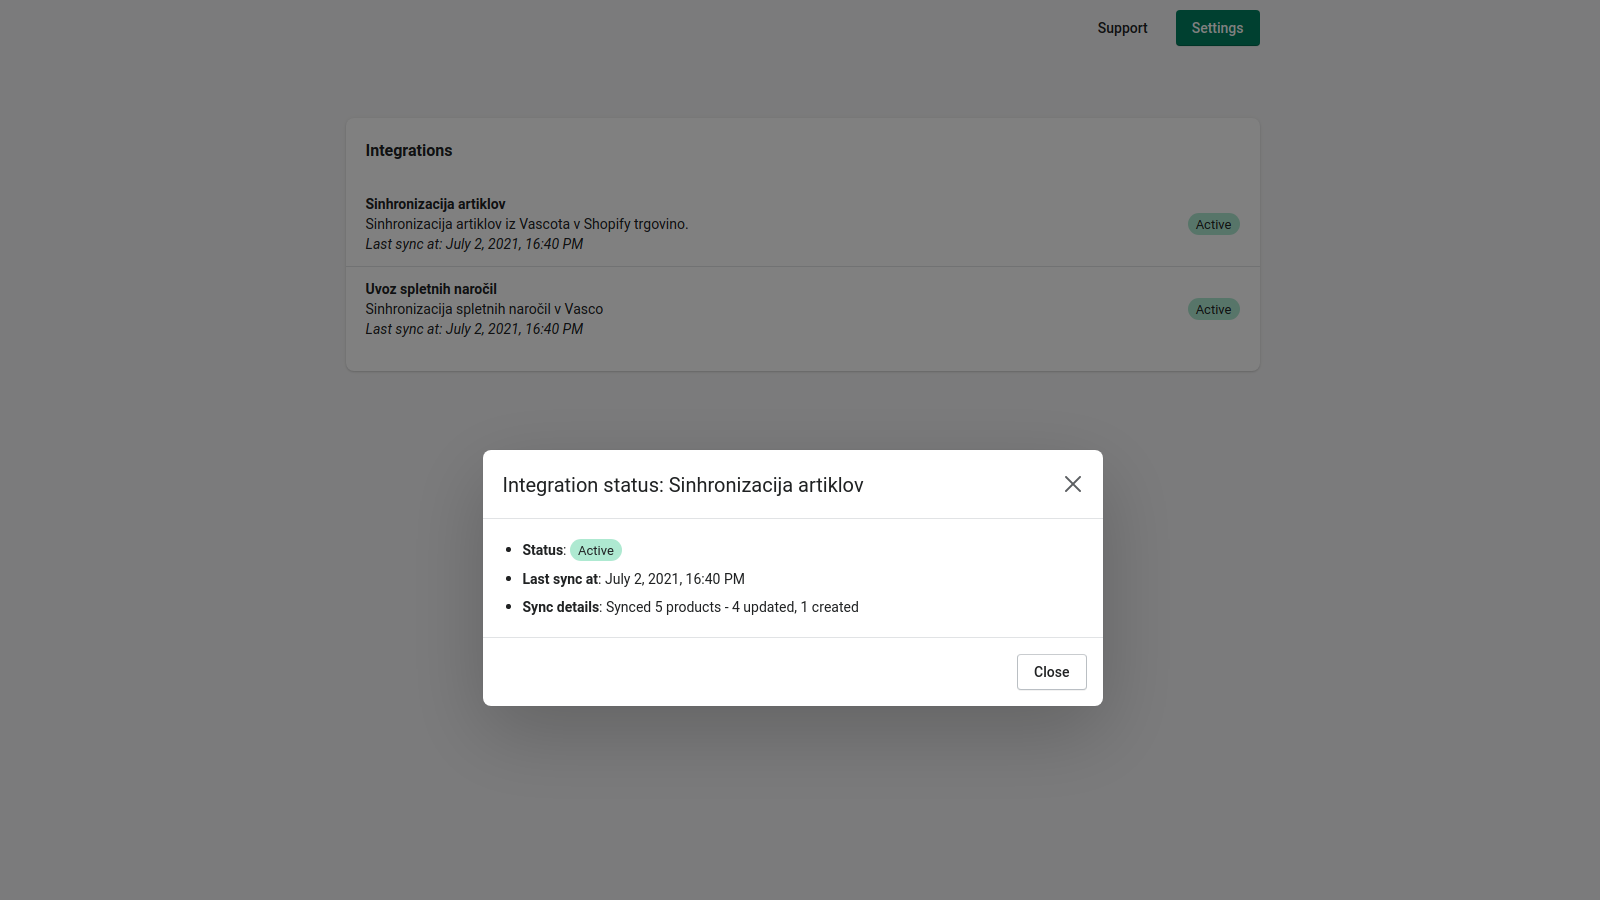 Track the progress and status of integrations